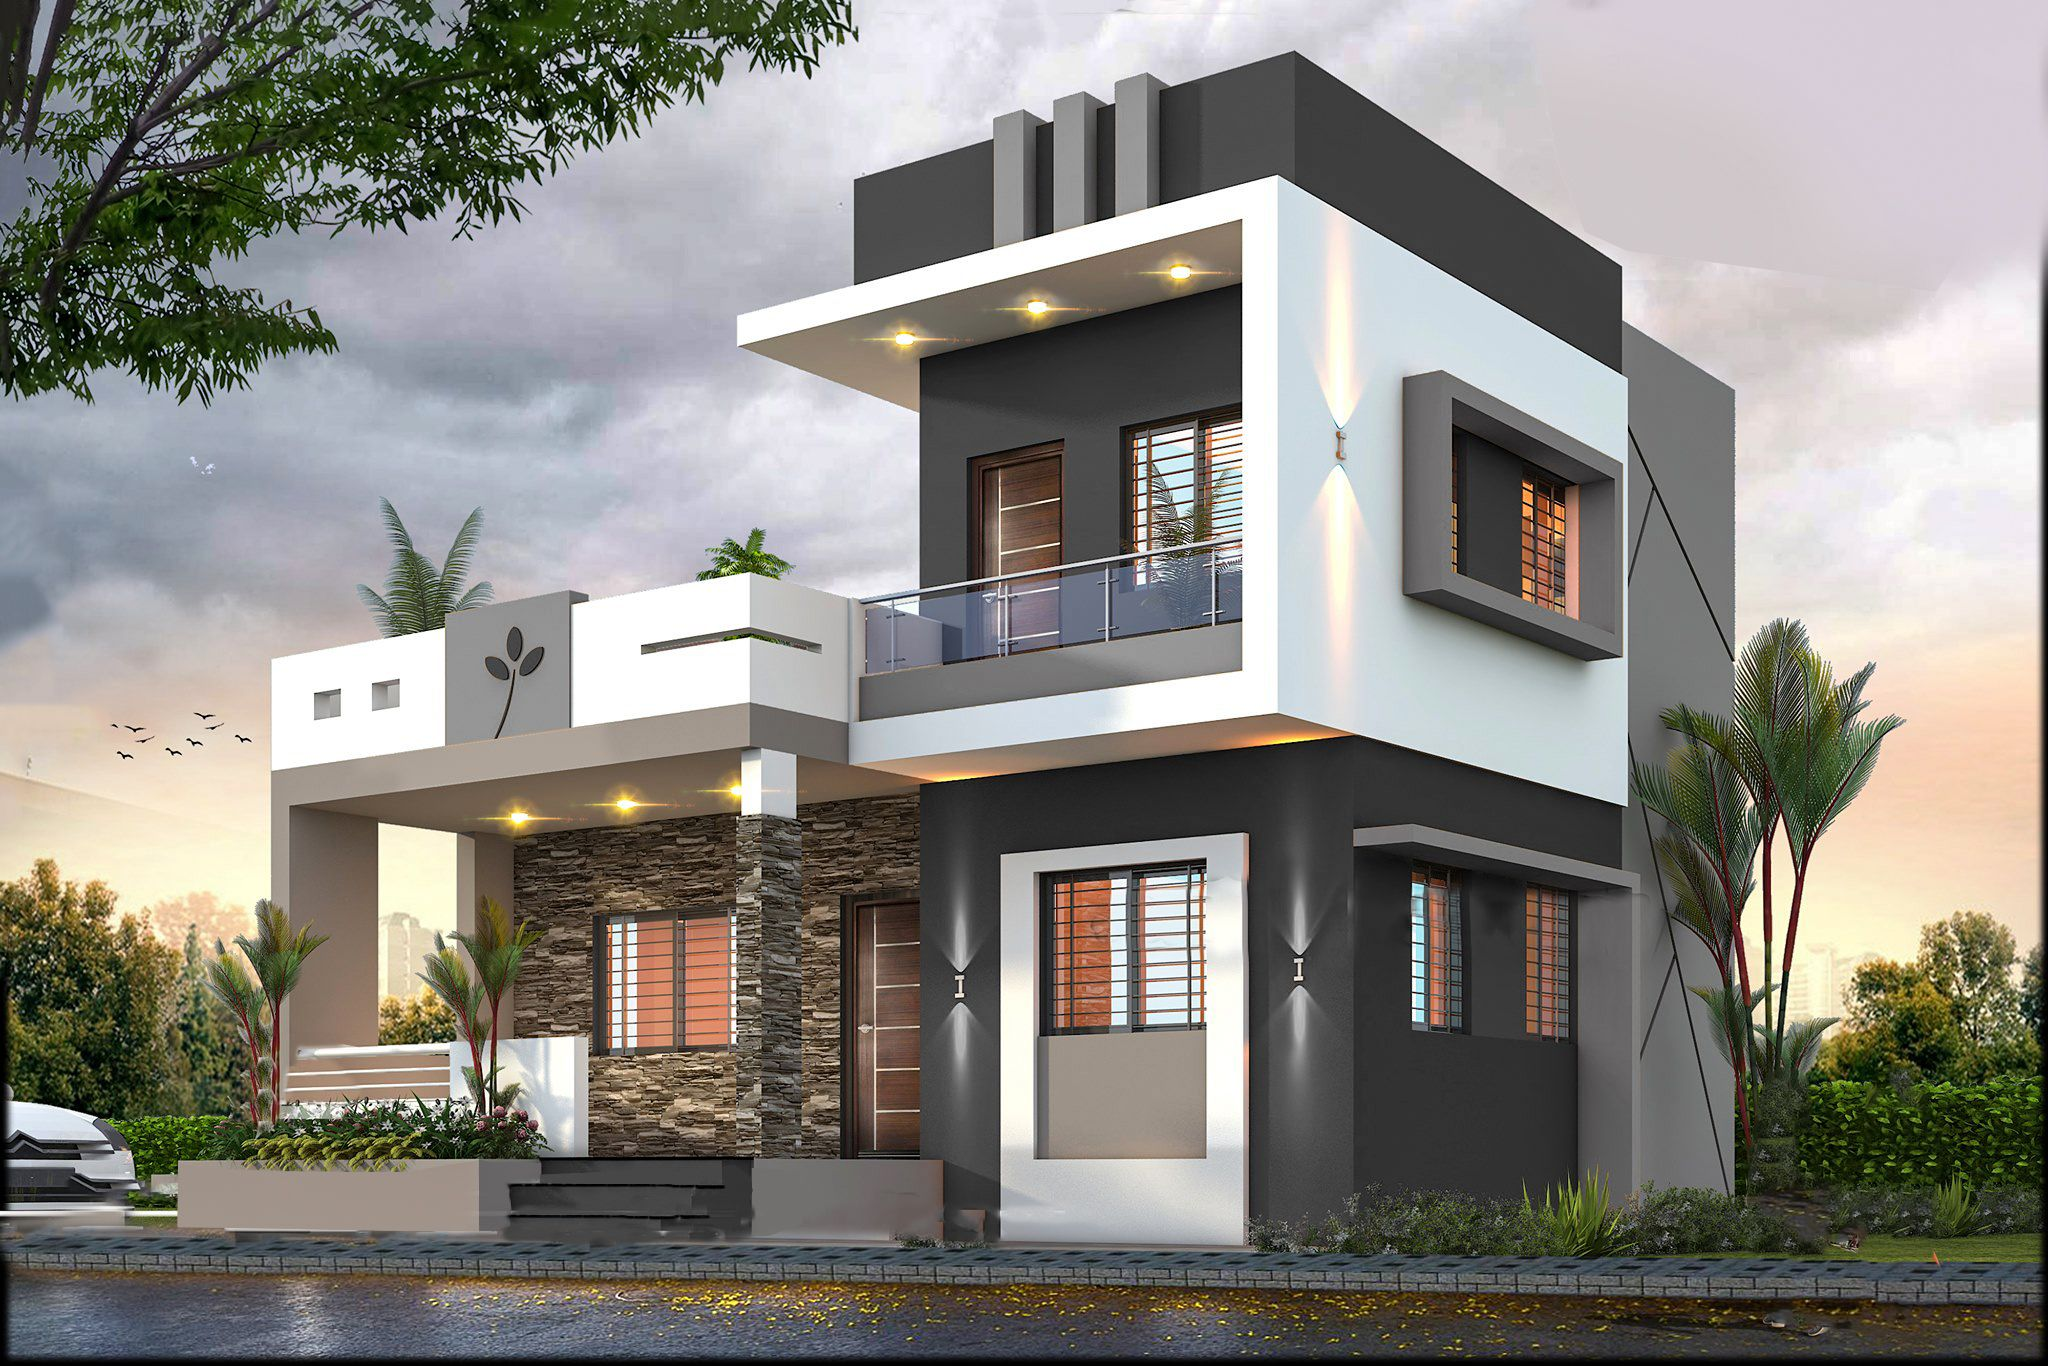 Single Floor Home Designs Small House Front Design Small House Design Exterior House Front Design